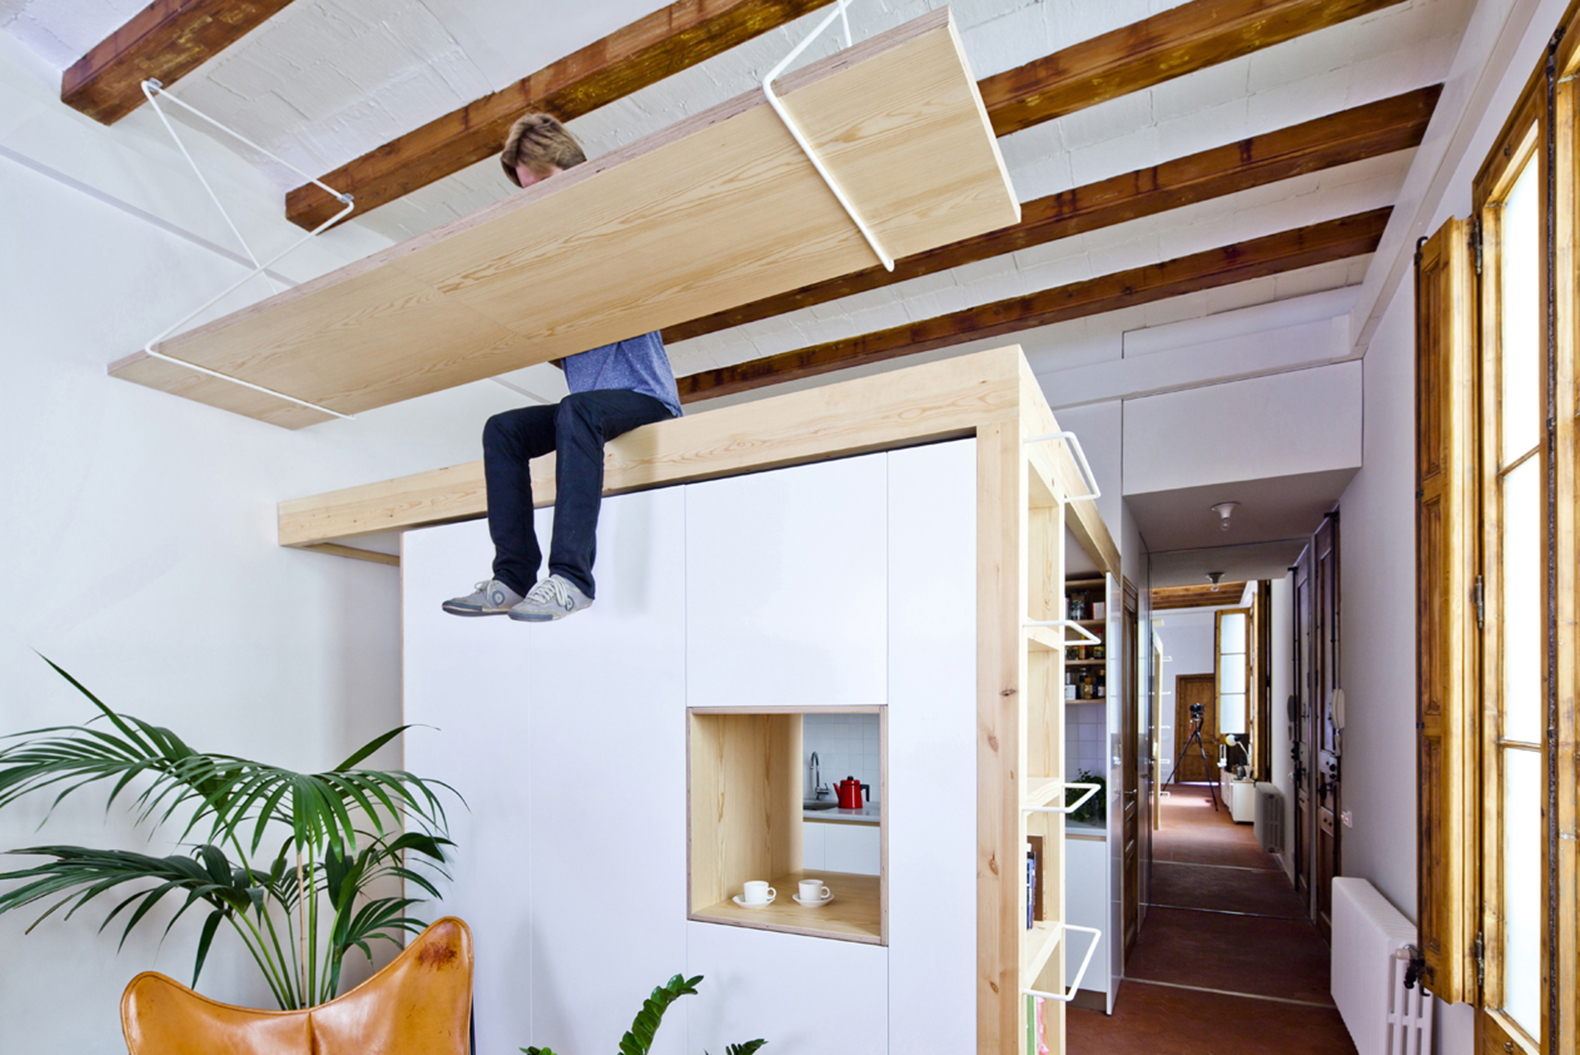 Playful Renovation In Barcelona Squeezes More Out Of A Tiny Home